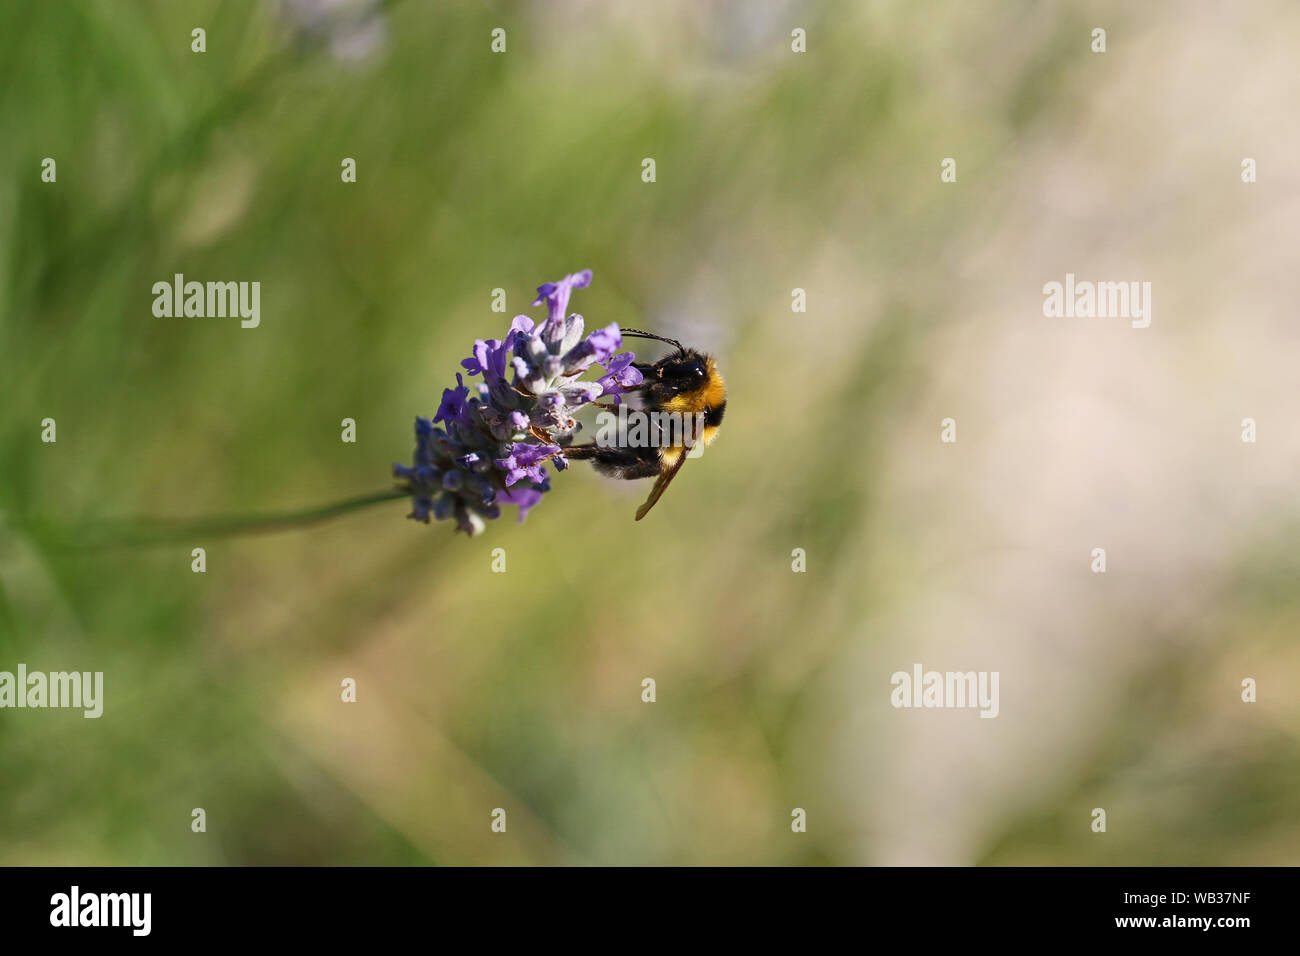 white tailed bumble bee or bumblebee Latin bombus lucorum similar to bombus terrestris family apidae feeding on a lavender bush in summer in Italy Stock Photo